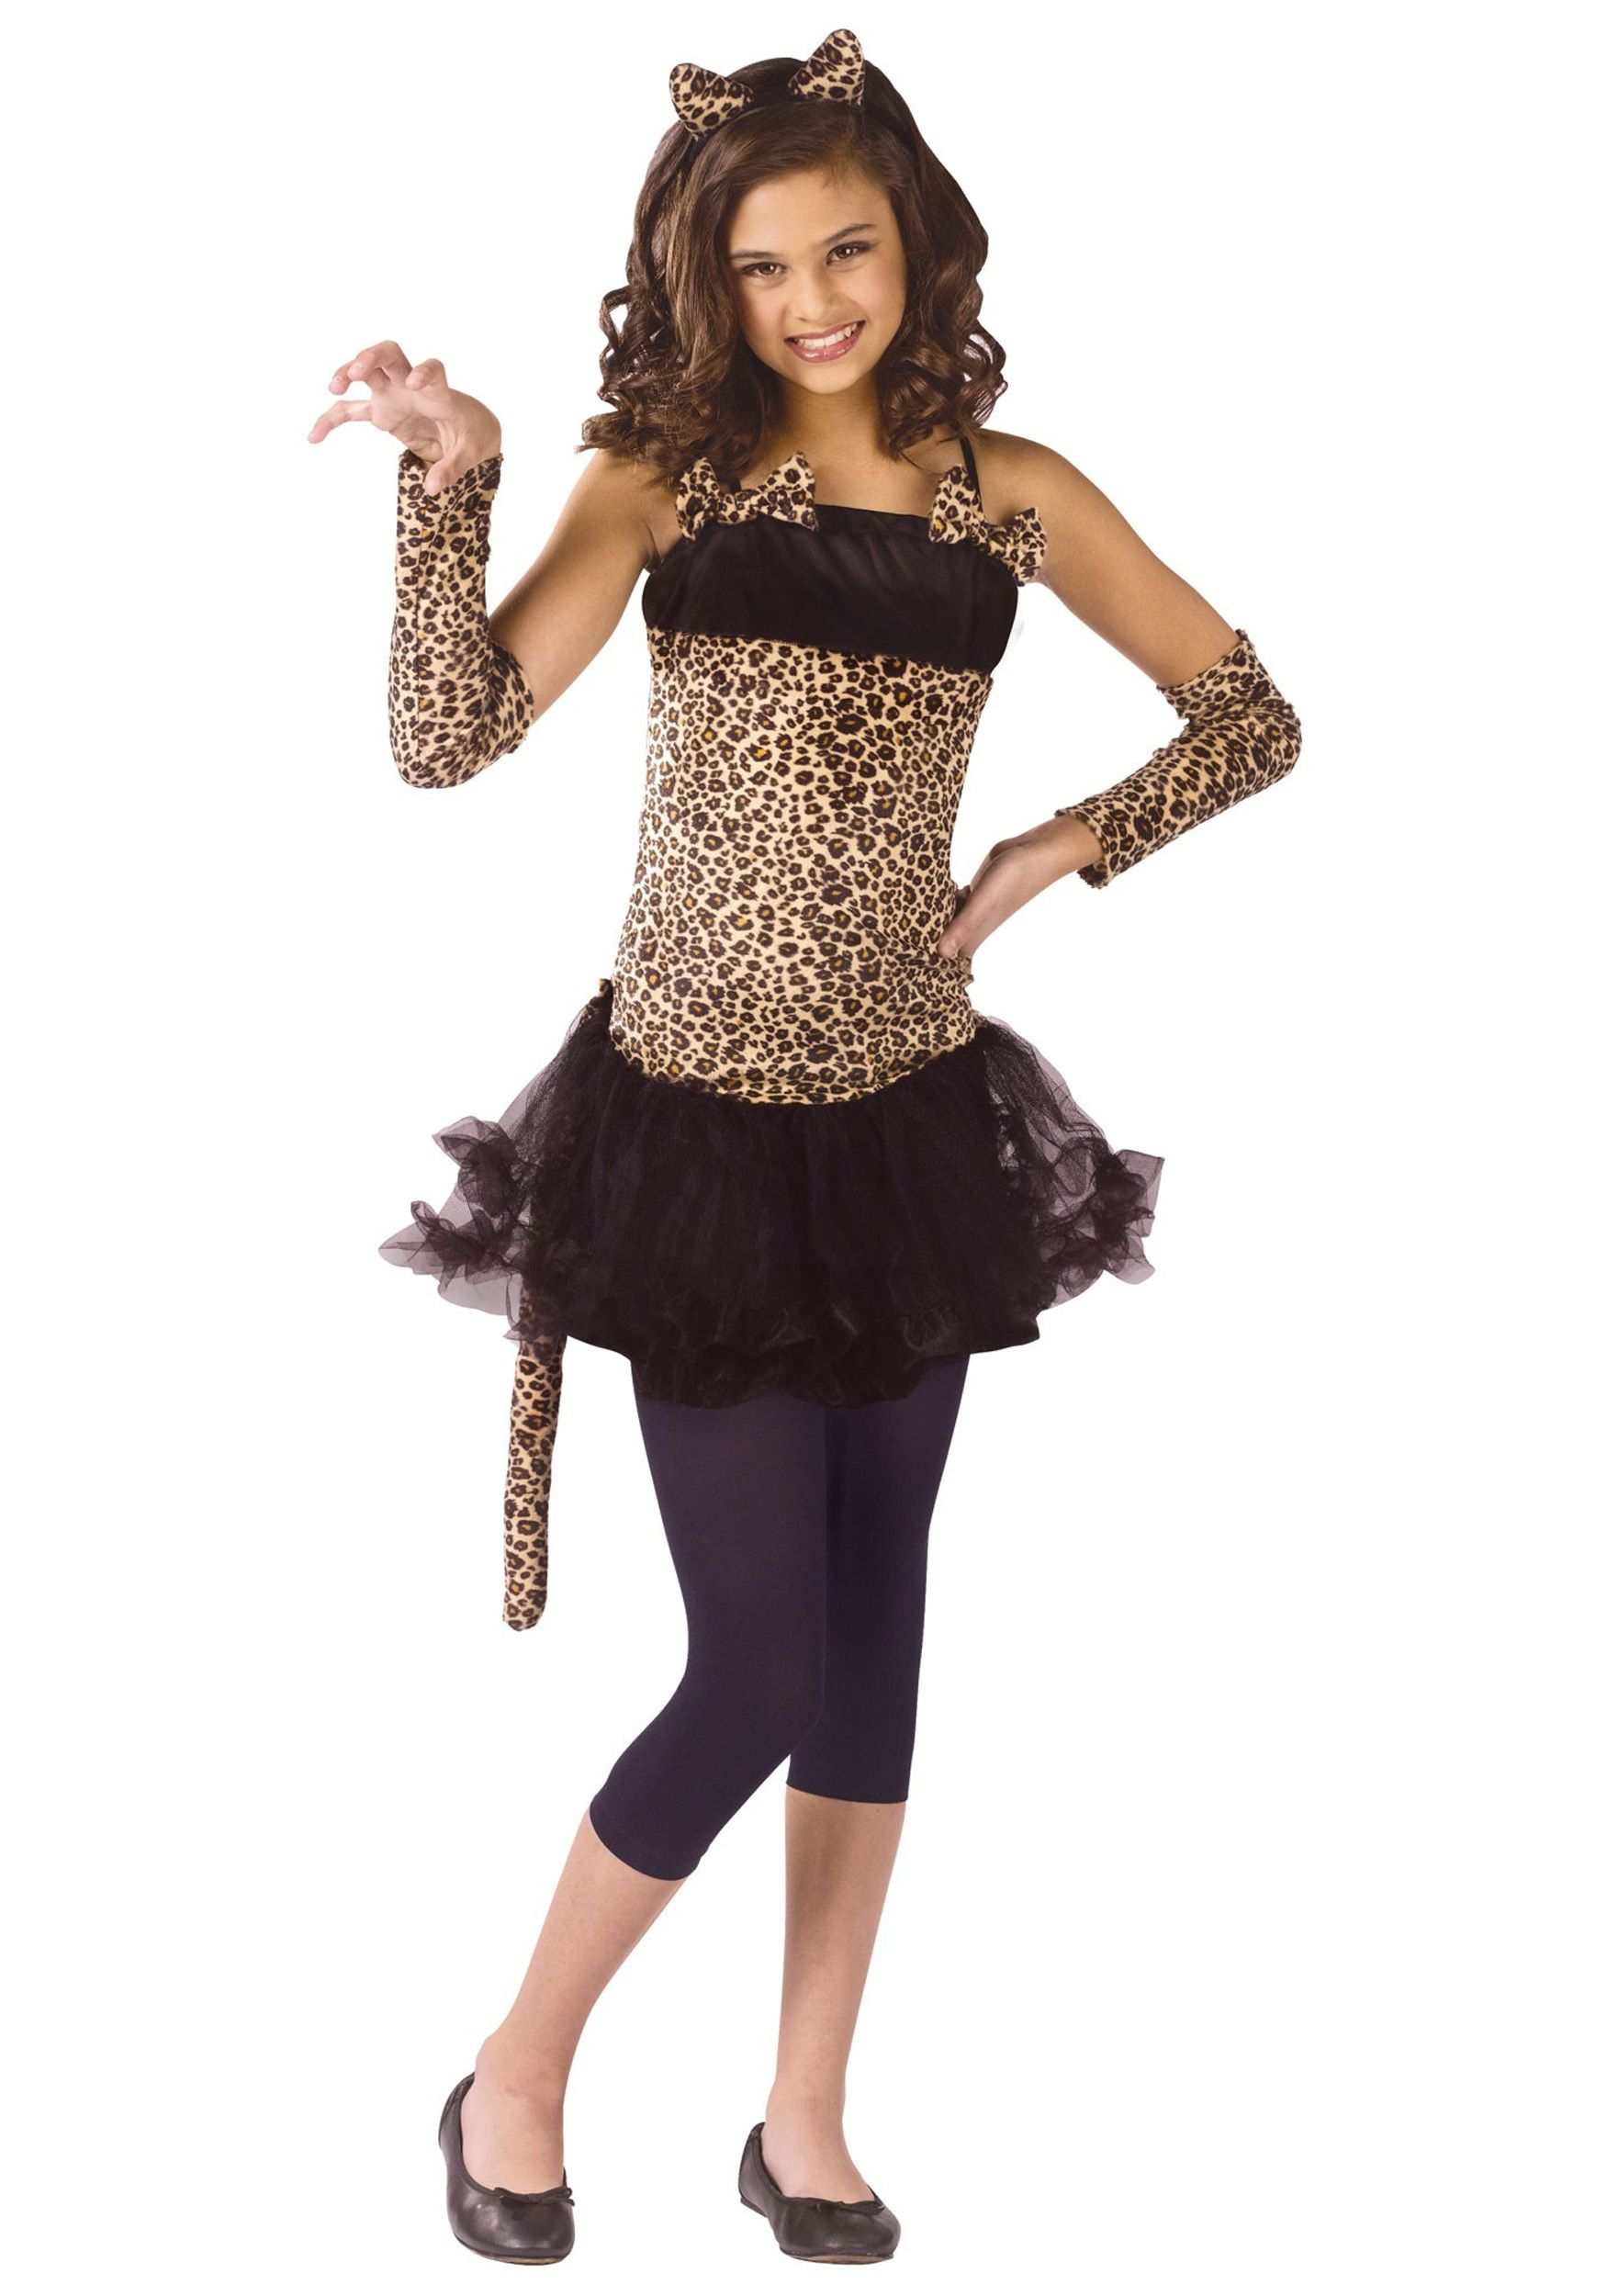 wild cat halloween costume 2014 awesome wild cat costume for upcoming halloween this is a great safari girl costume - Cat Outfit For Halloween